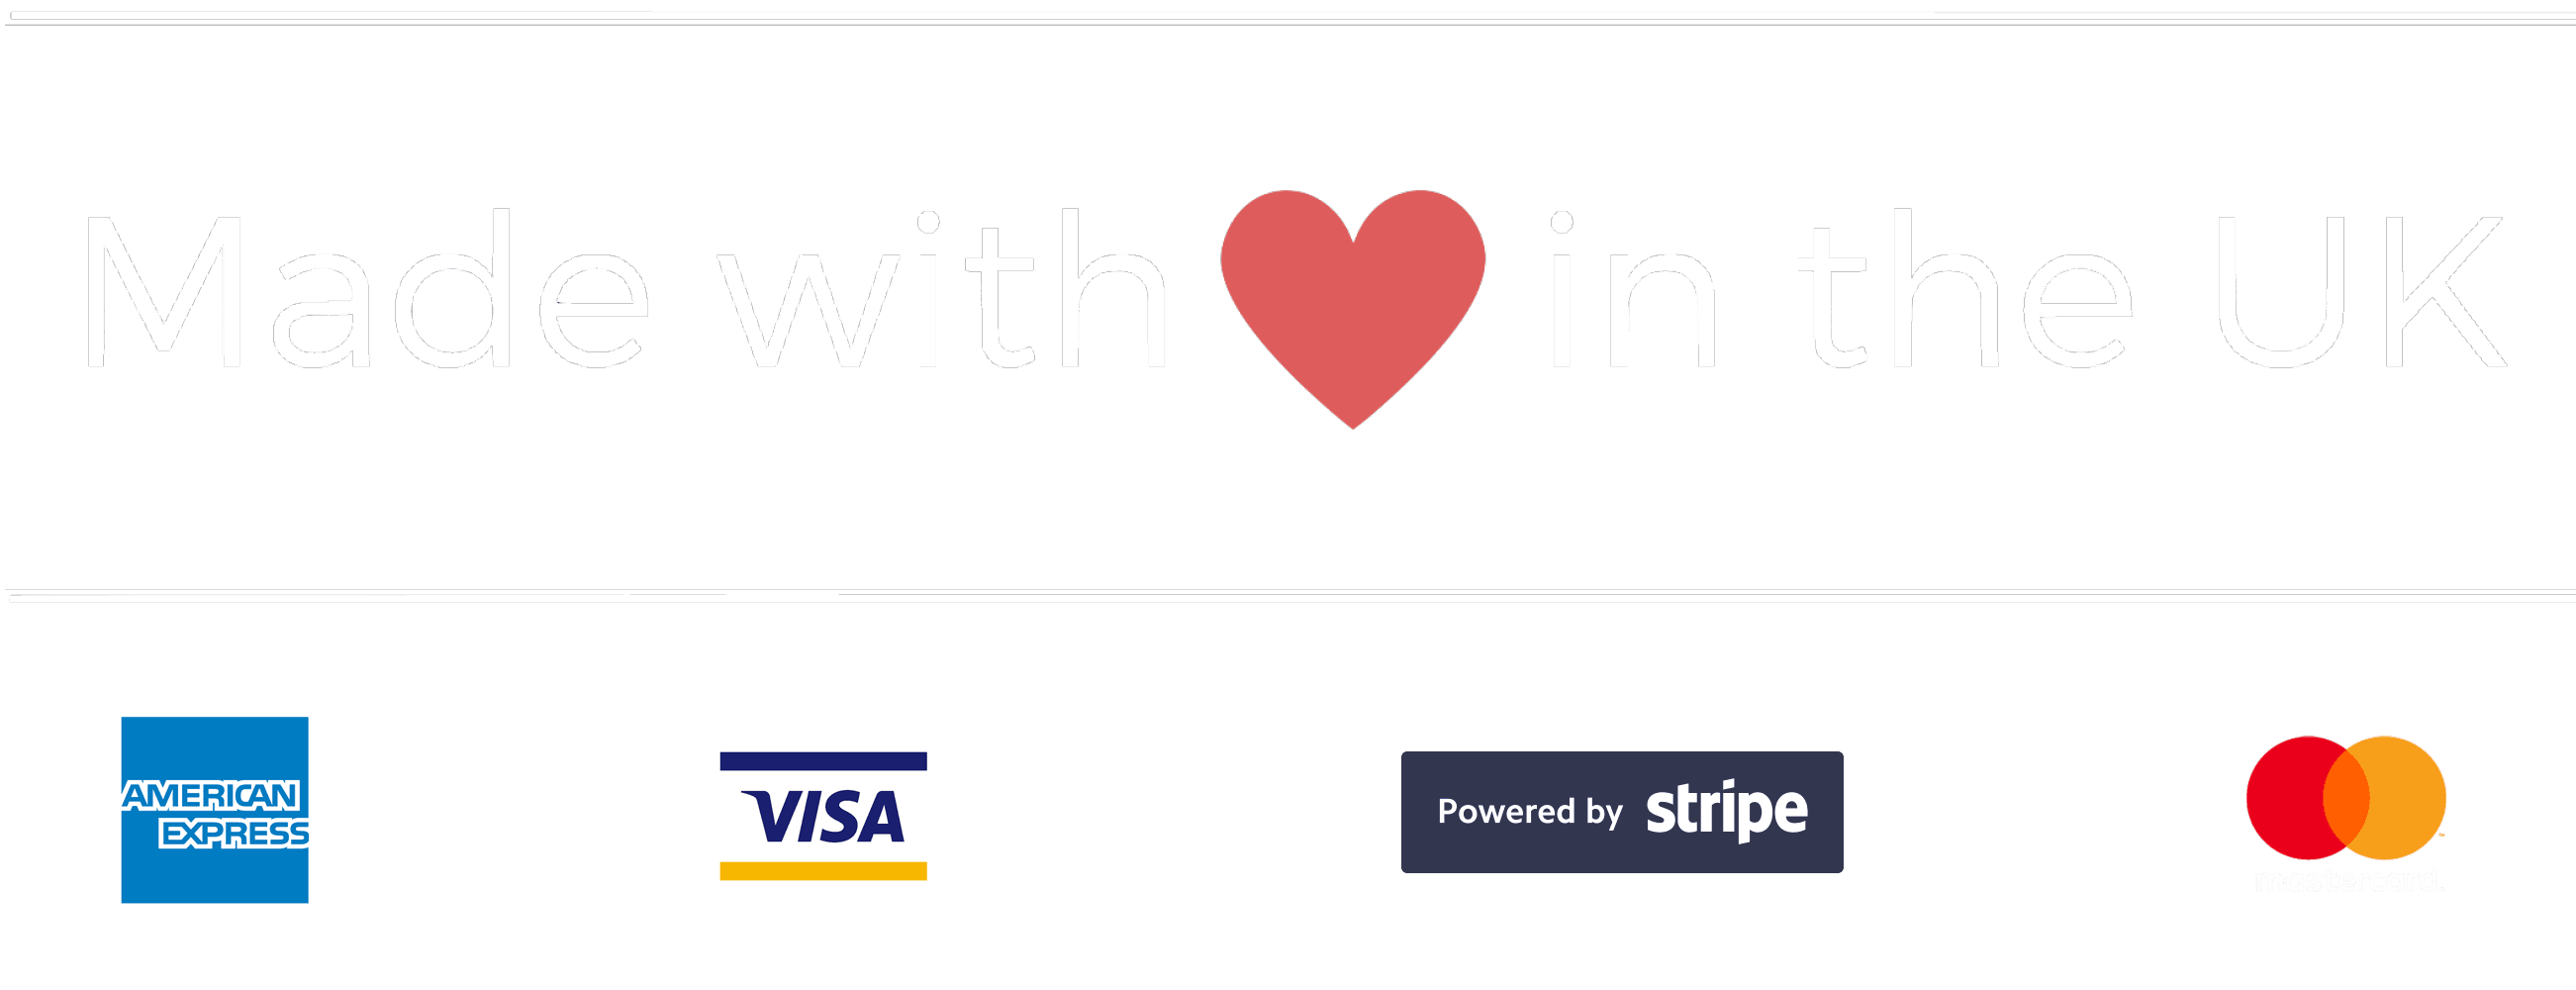 Made with <3 in the UK